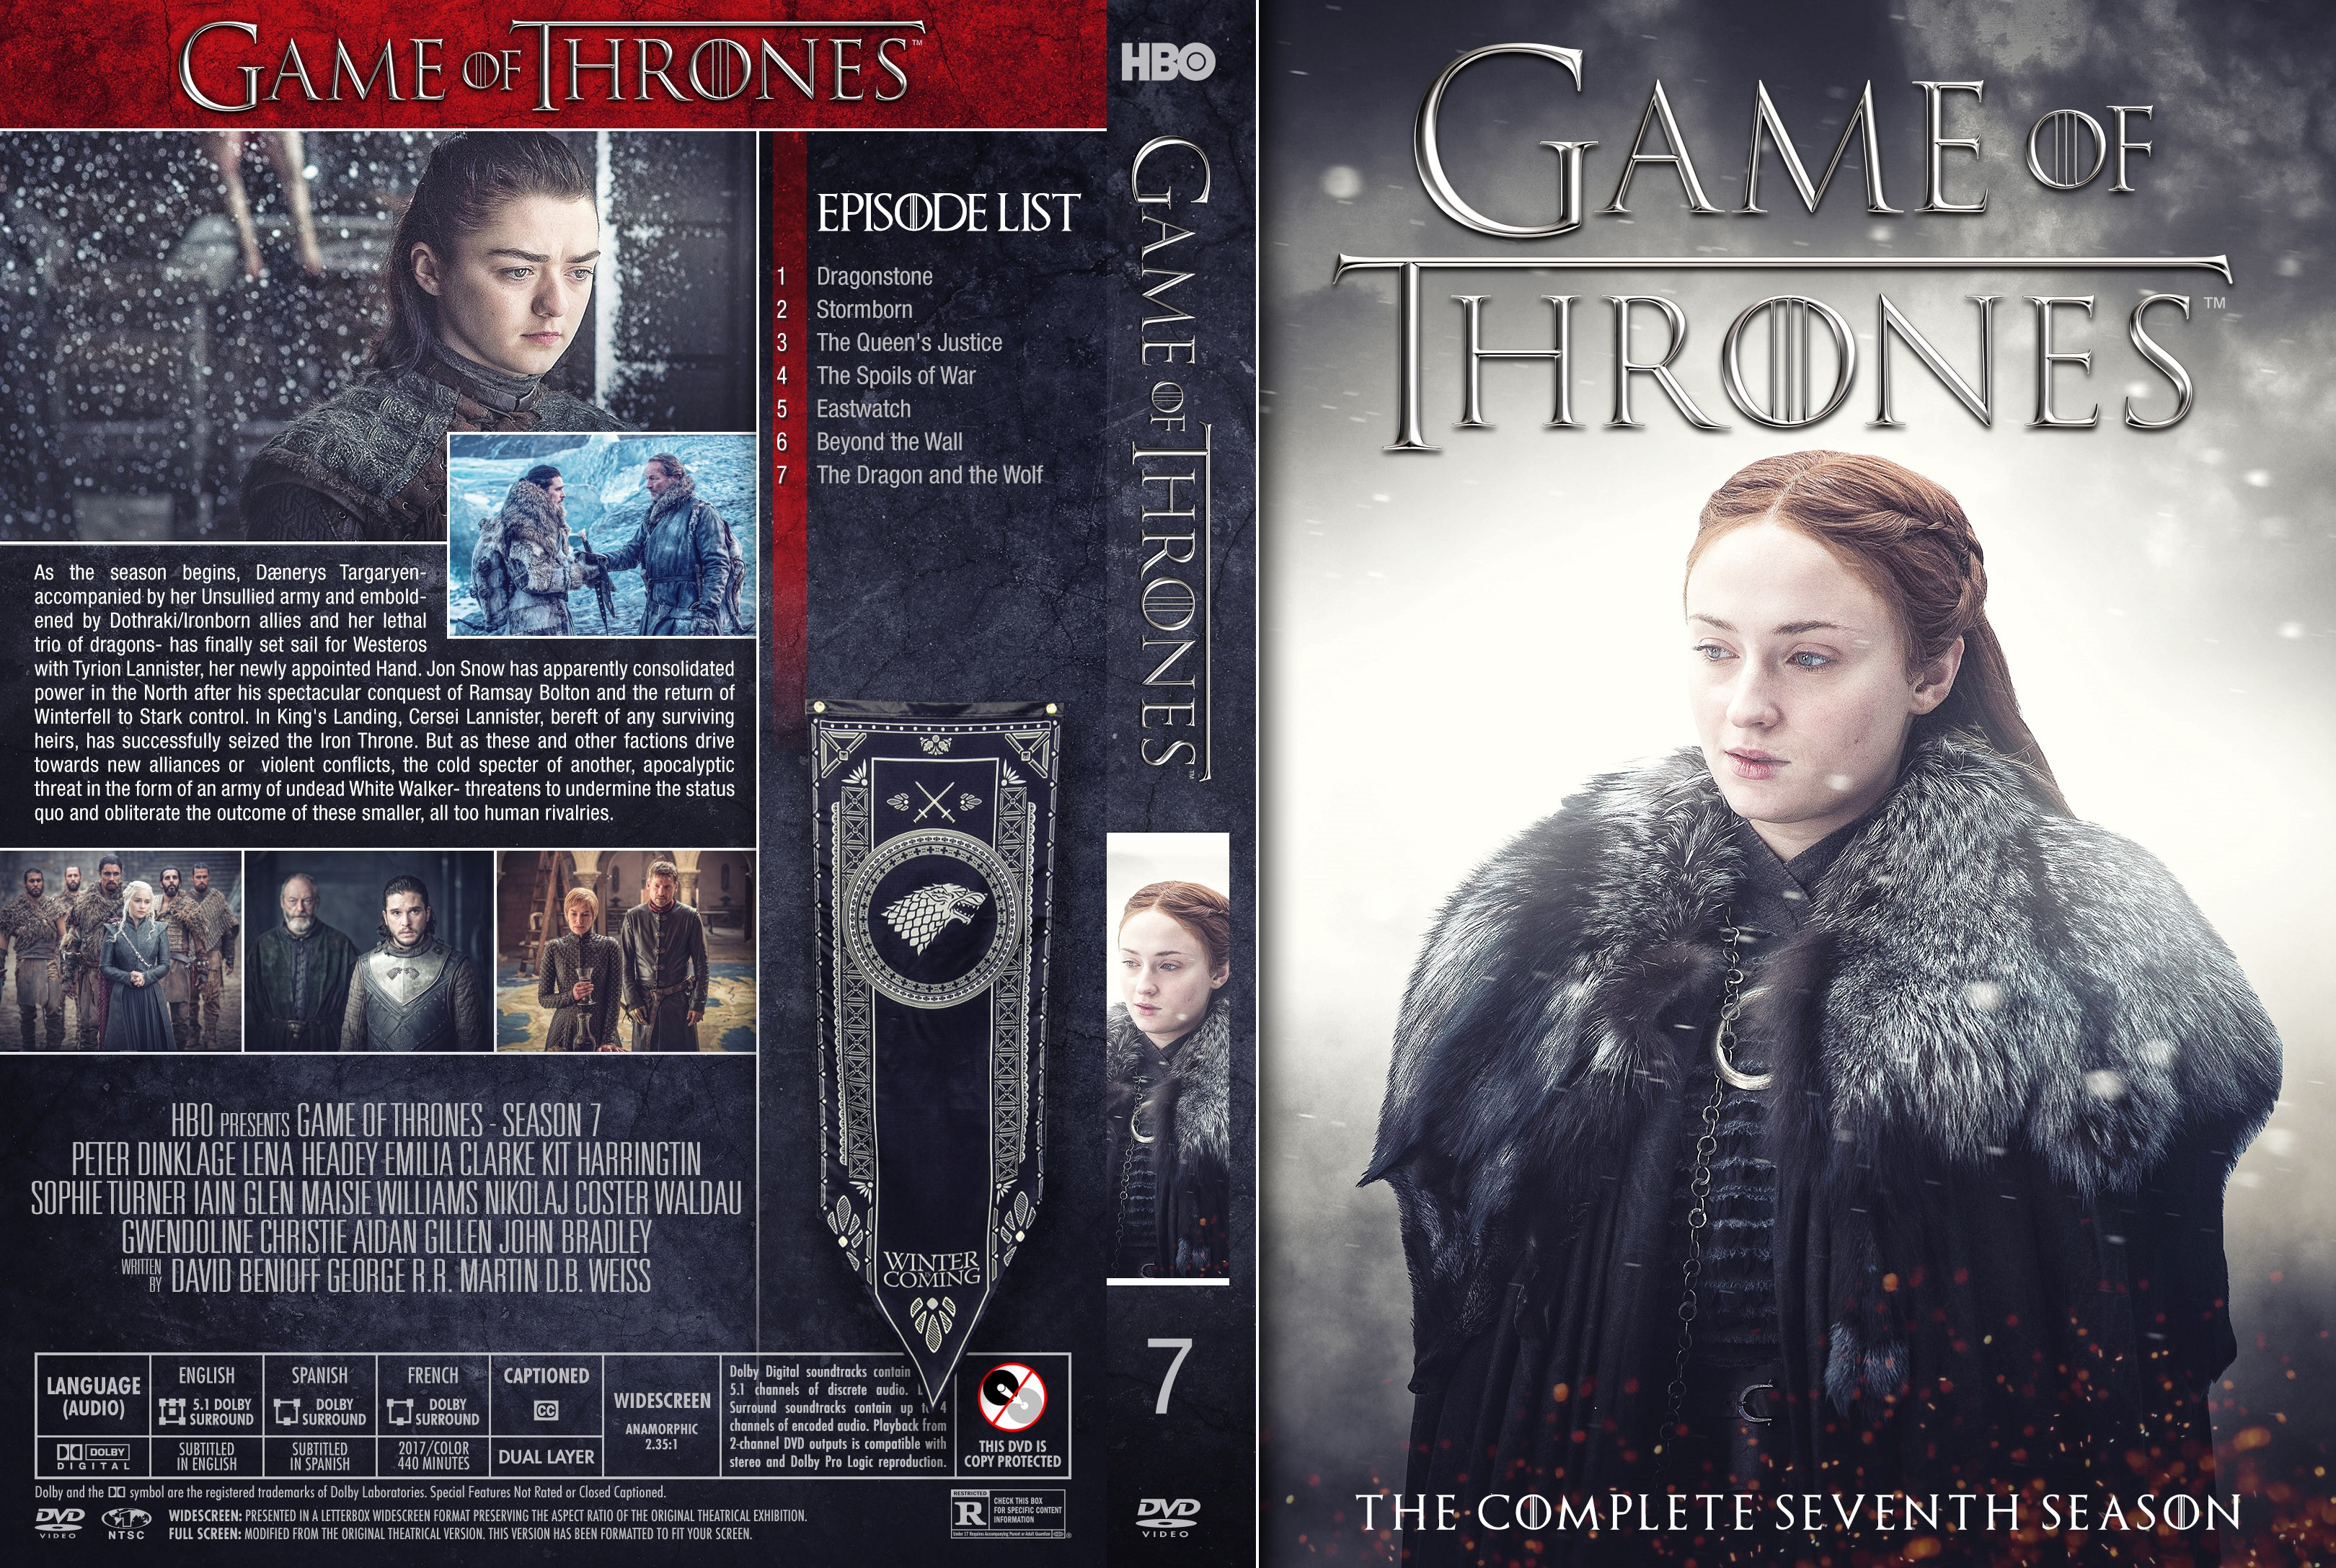 Game Of Thrones Season 7 DVD Cover